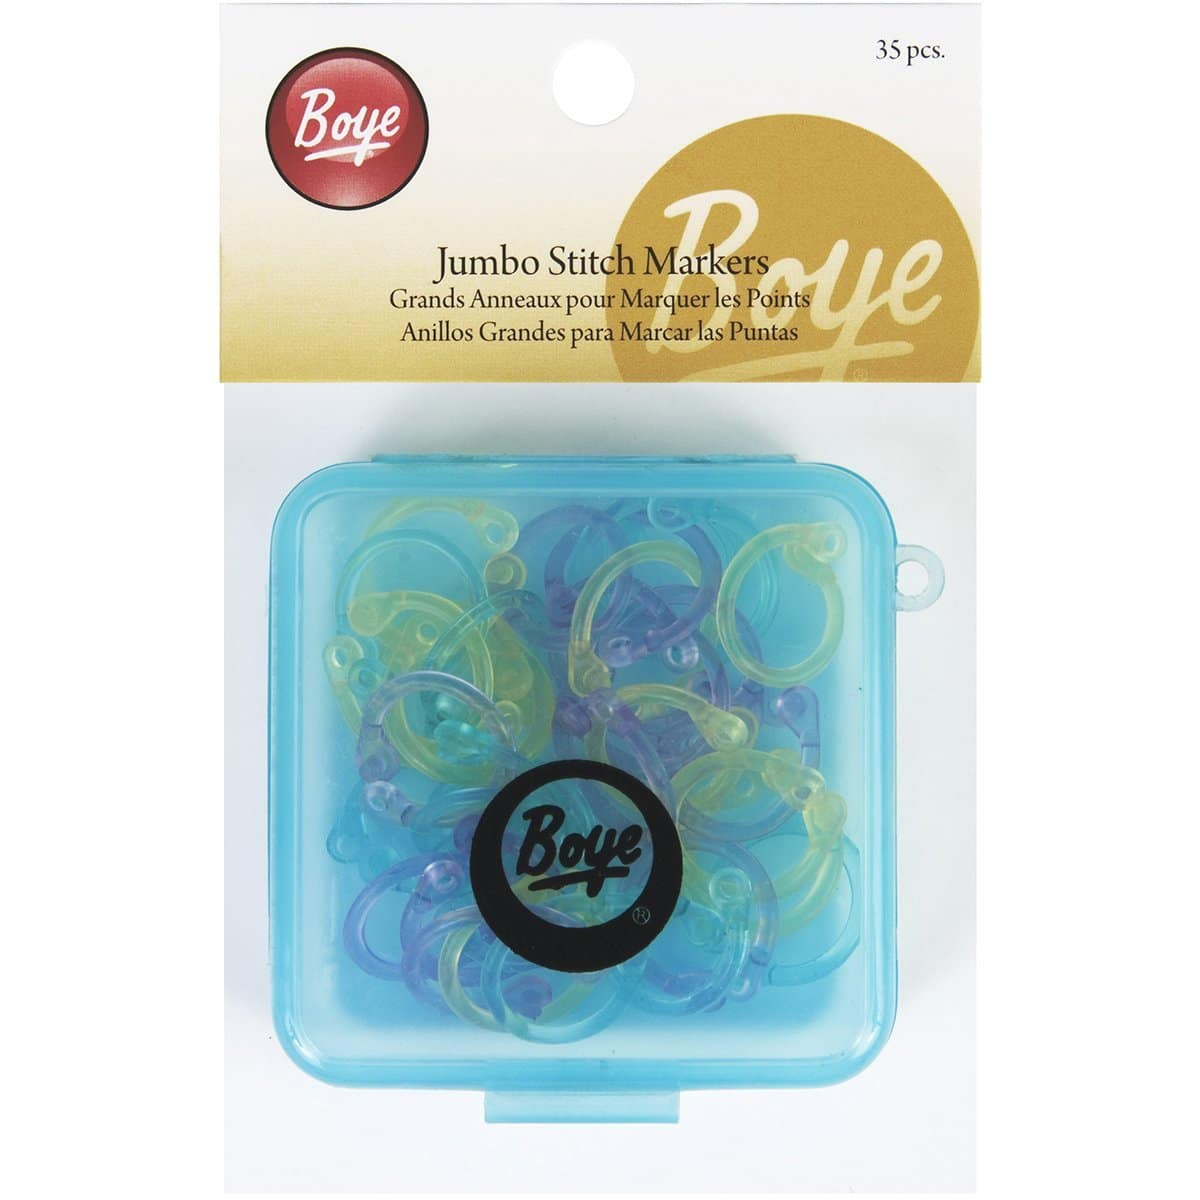 Boye 7582 Jumbo Stitch Markers for Sizes 0 to 15, 35-Pack  at its Best Price  $2.69 @amazon